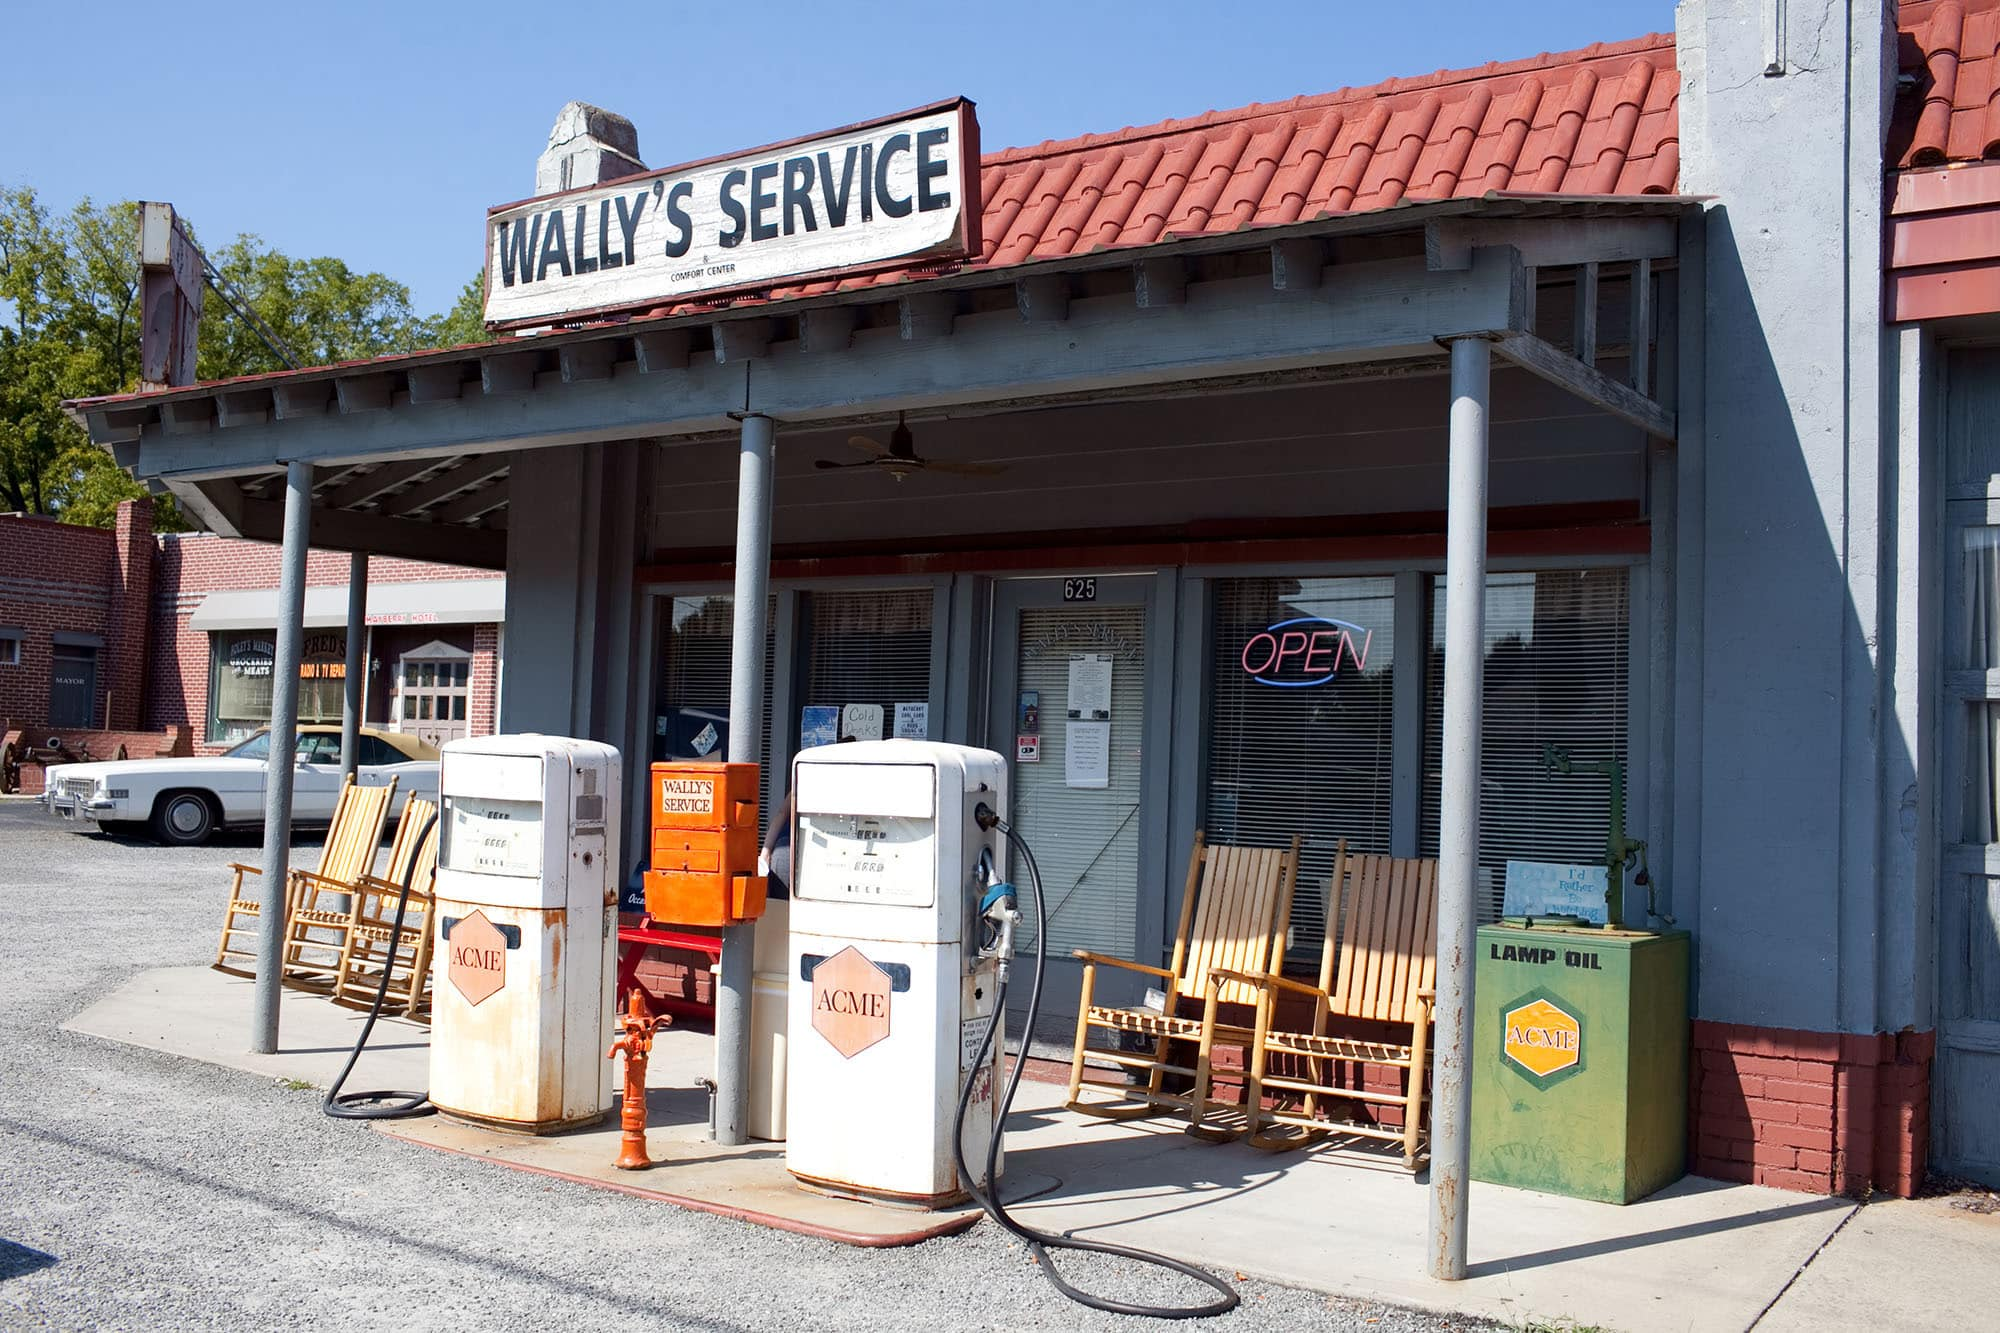 Virginia/North Carolina Road Trip - Mt. Airy - Mayberry Town in North Carolina - gas station